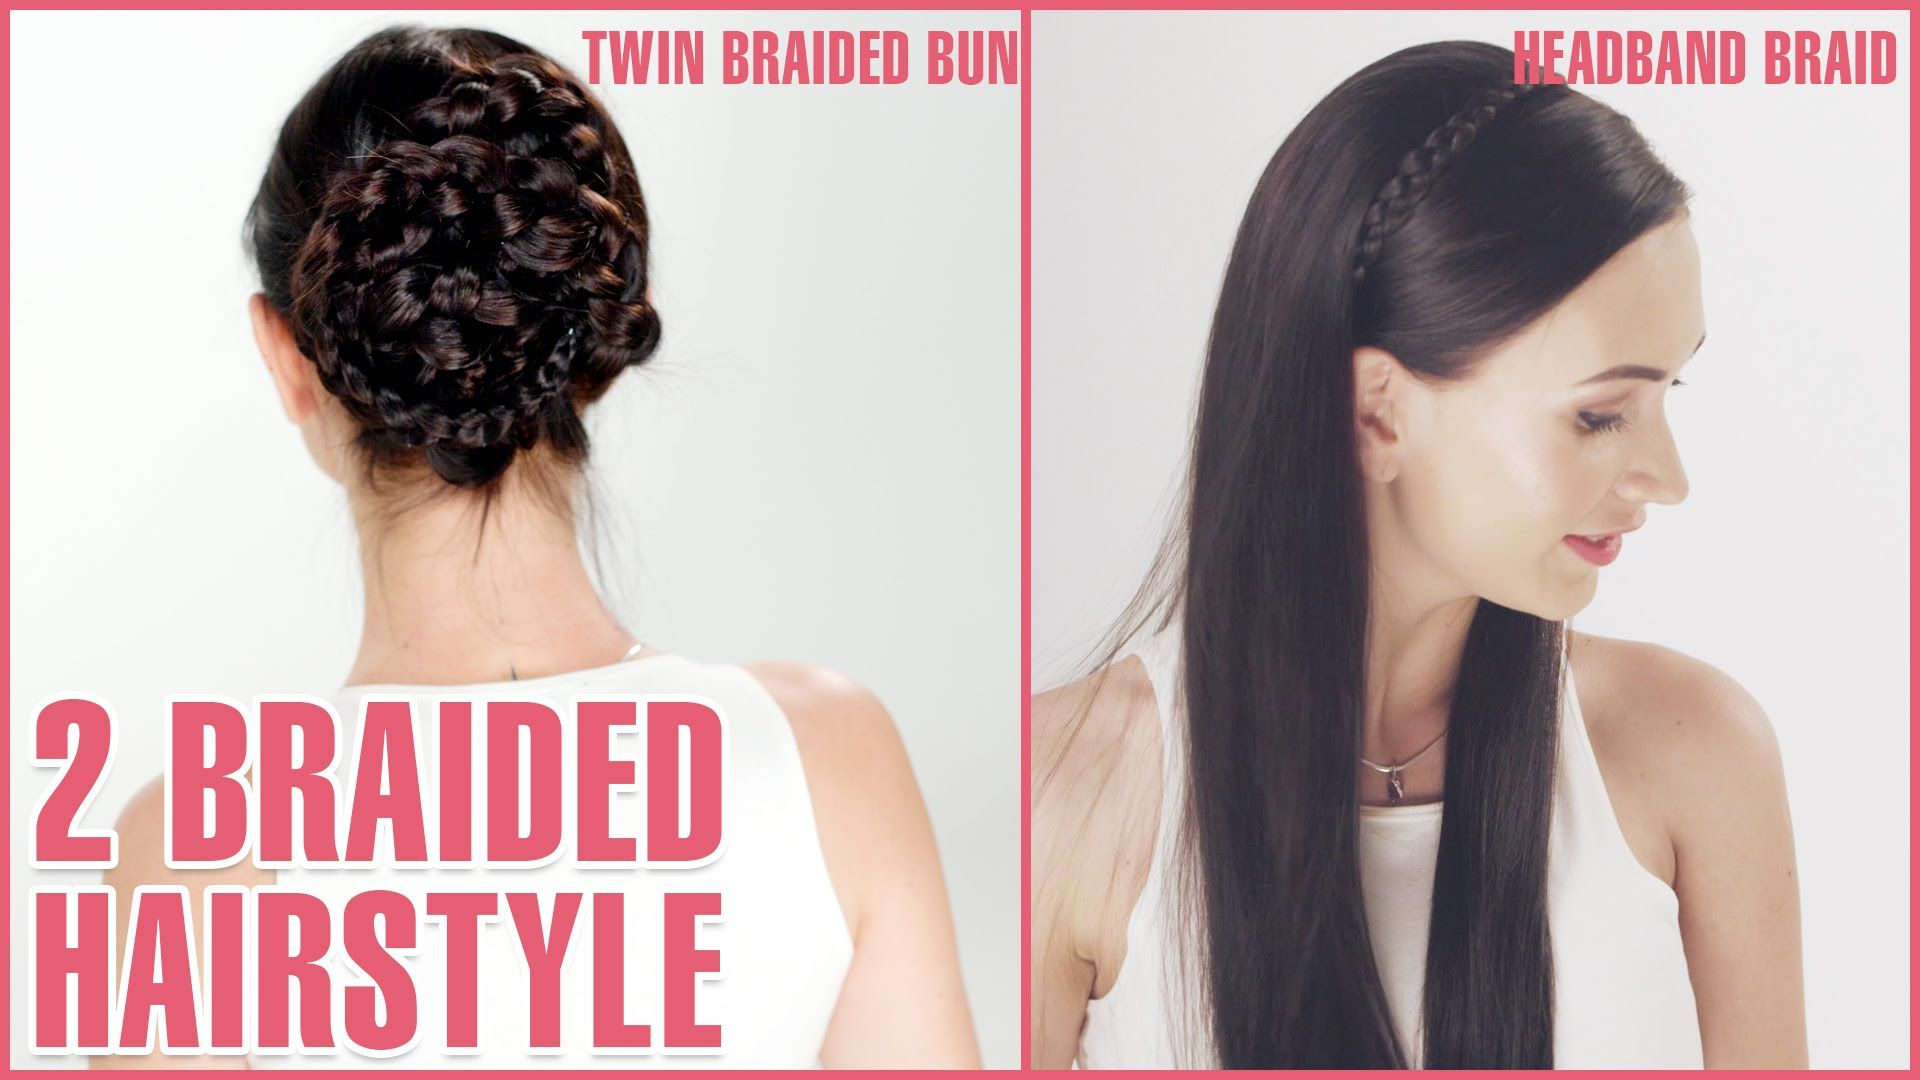 easy braided hairstyles a twin braided bun brush the hair to